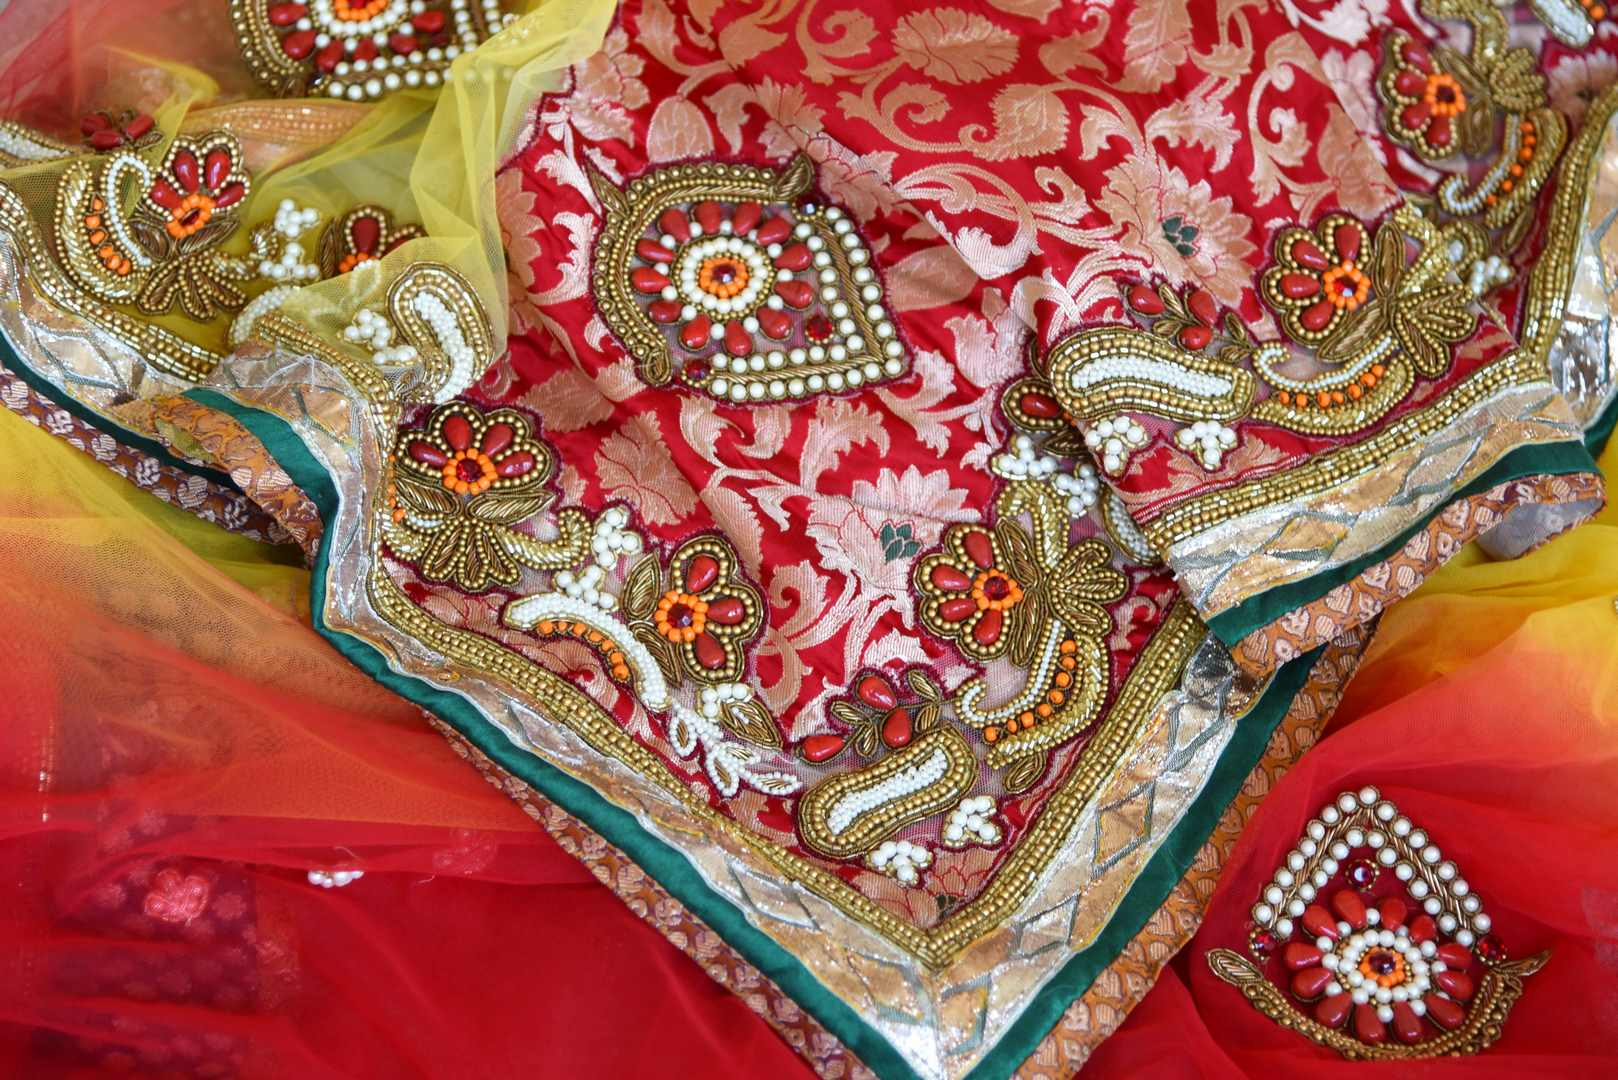 Shop red and yellow net saree online in USA with jewel pattern embroidery from Pure Elegance. Let your ethnic style be one of a kind with an exquisite variety of Indian handloom sarees, pure silk sarees, designer sarees from our exclusive fashion store in USA.-details